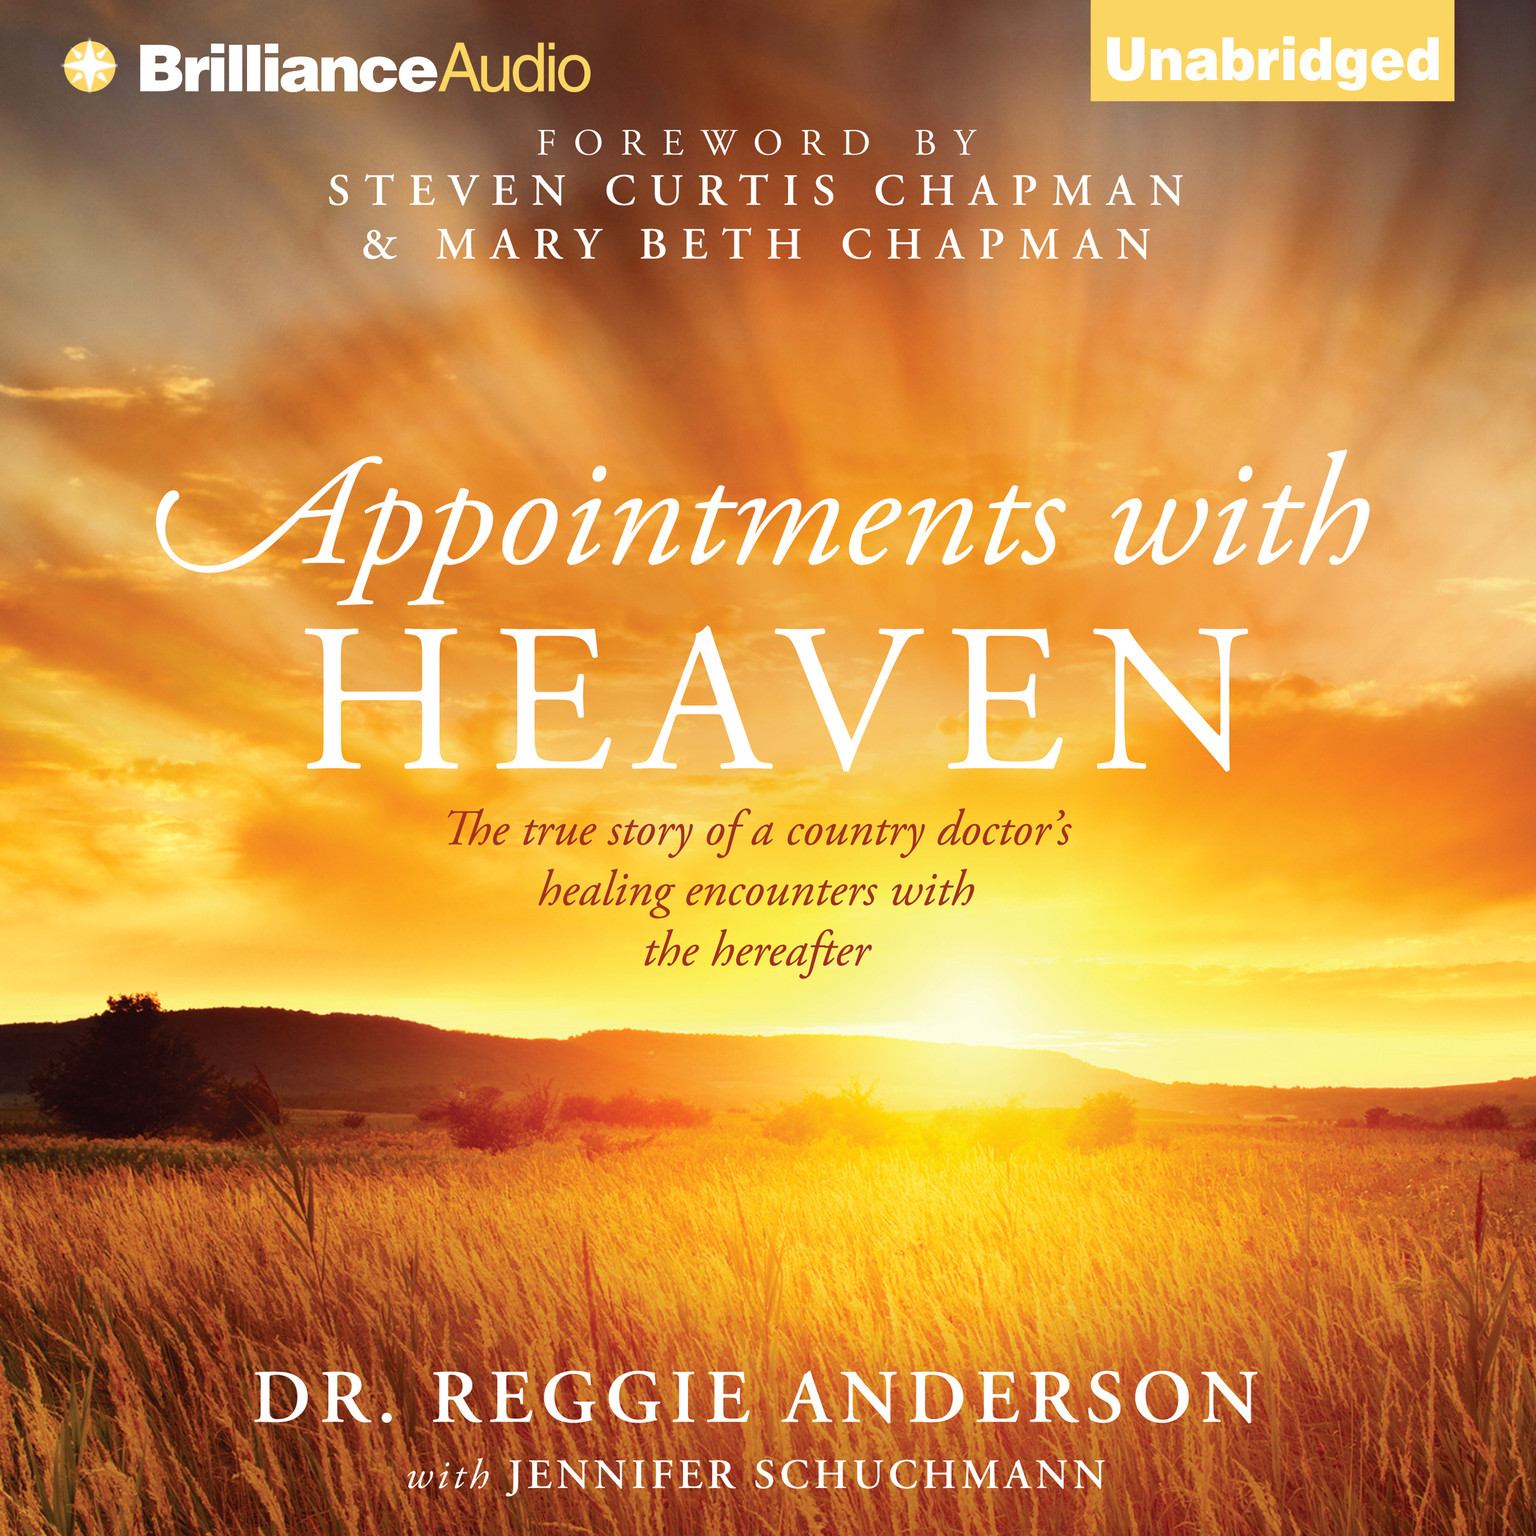 Printable Appointments with Heaven: The True Story of a Country Doctor's Healing Encounters with the Hereafter Audiobook Cover Art